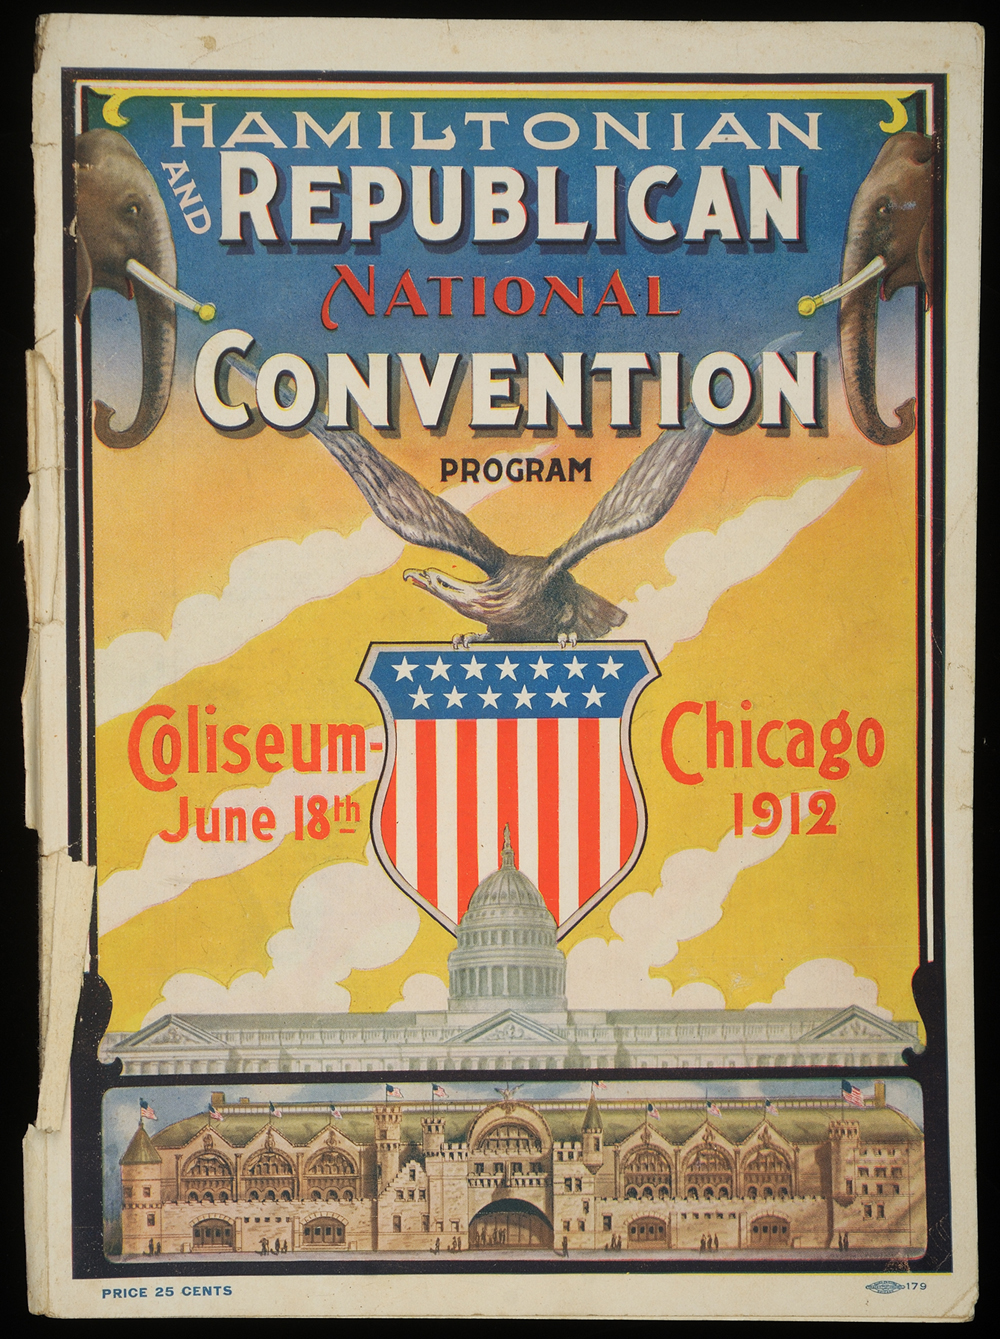 Program of the Republican National Convention, 1912